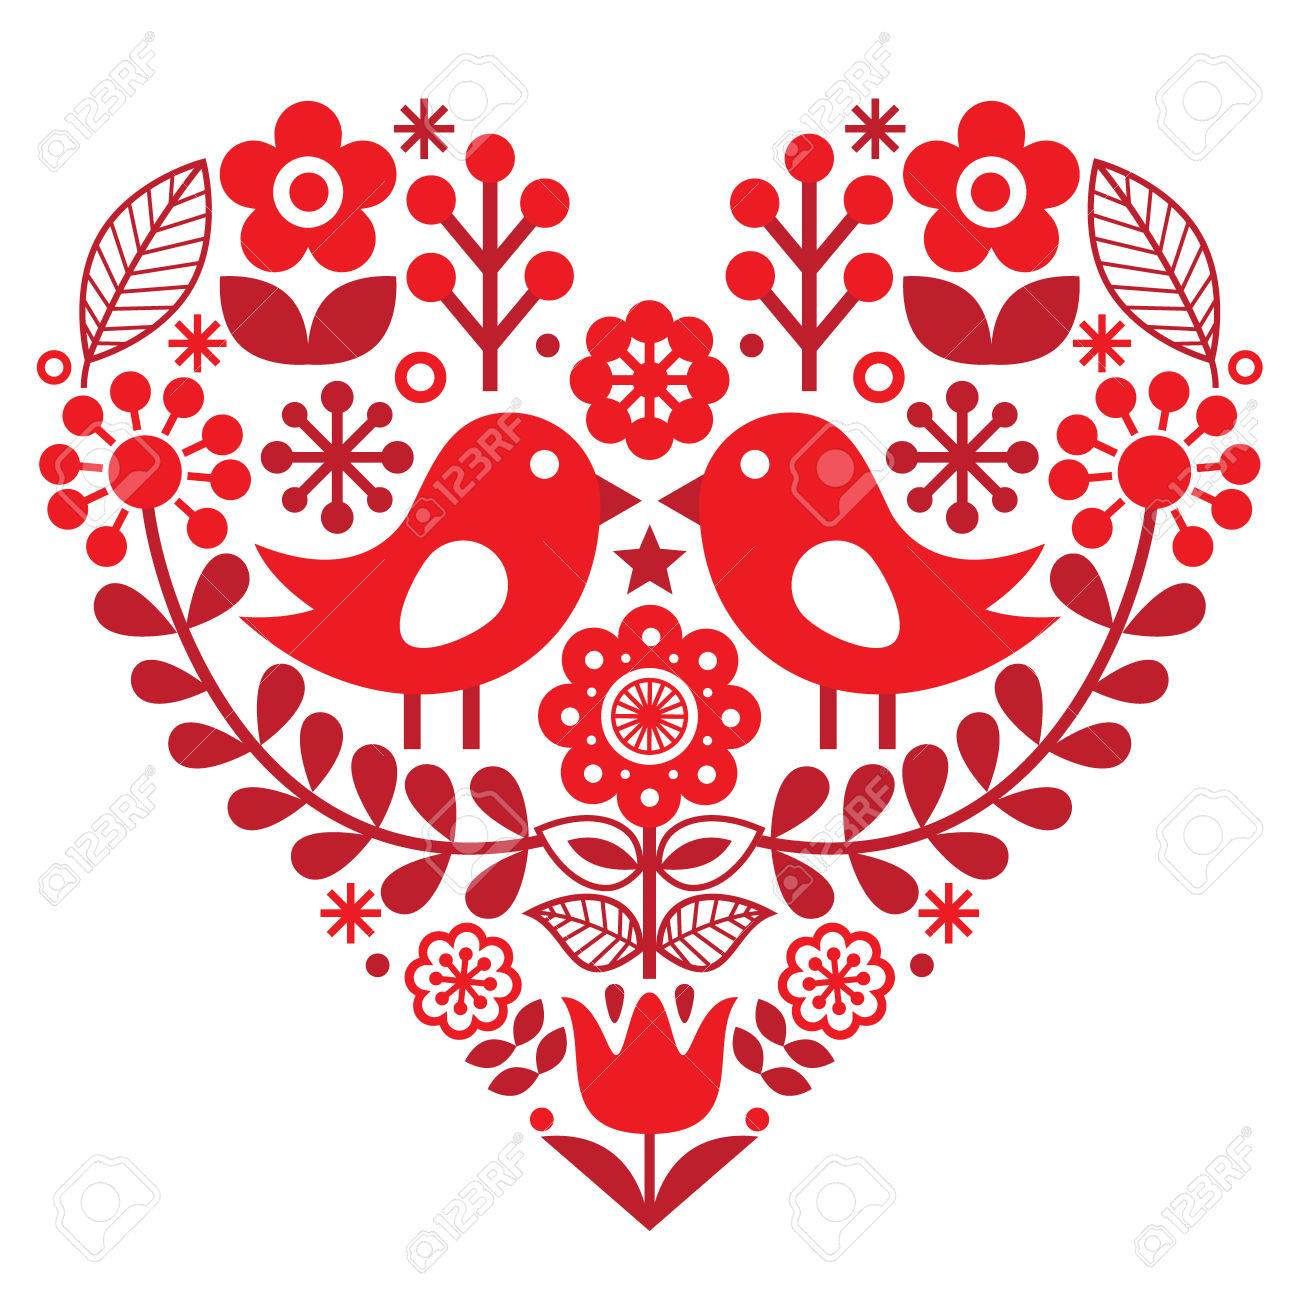 Valentine's Day folk pattern with birds and flowers - Finnish inspired - 66444438